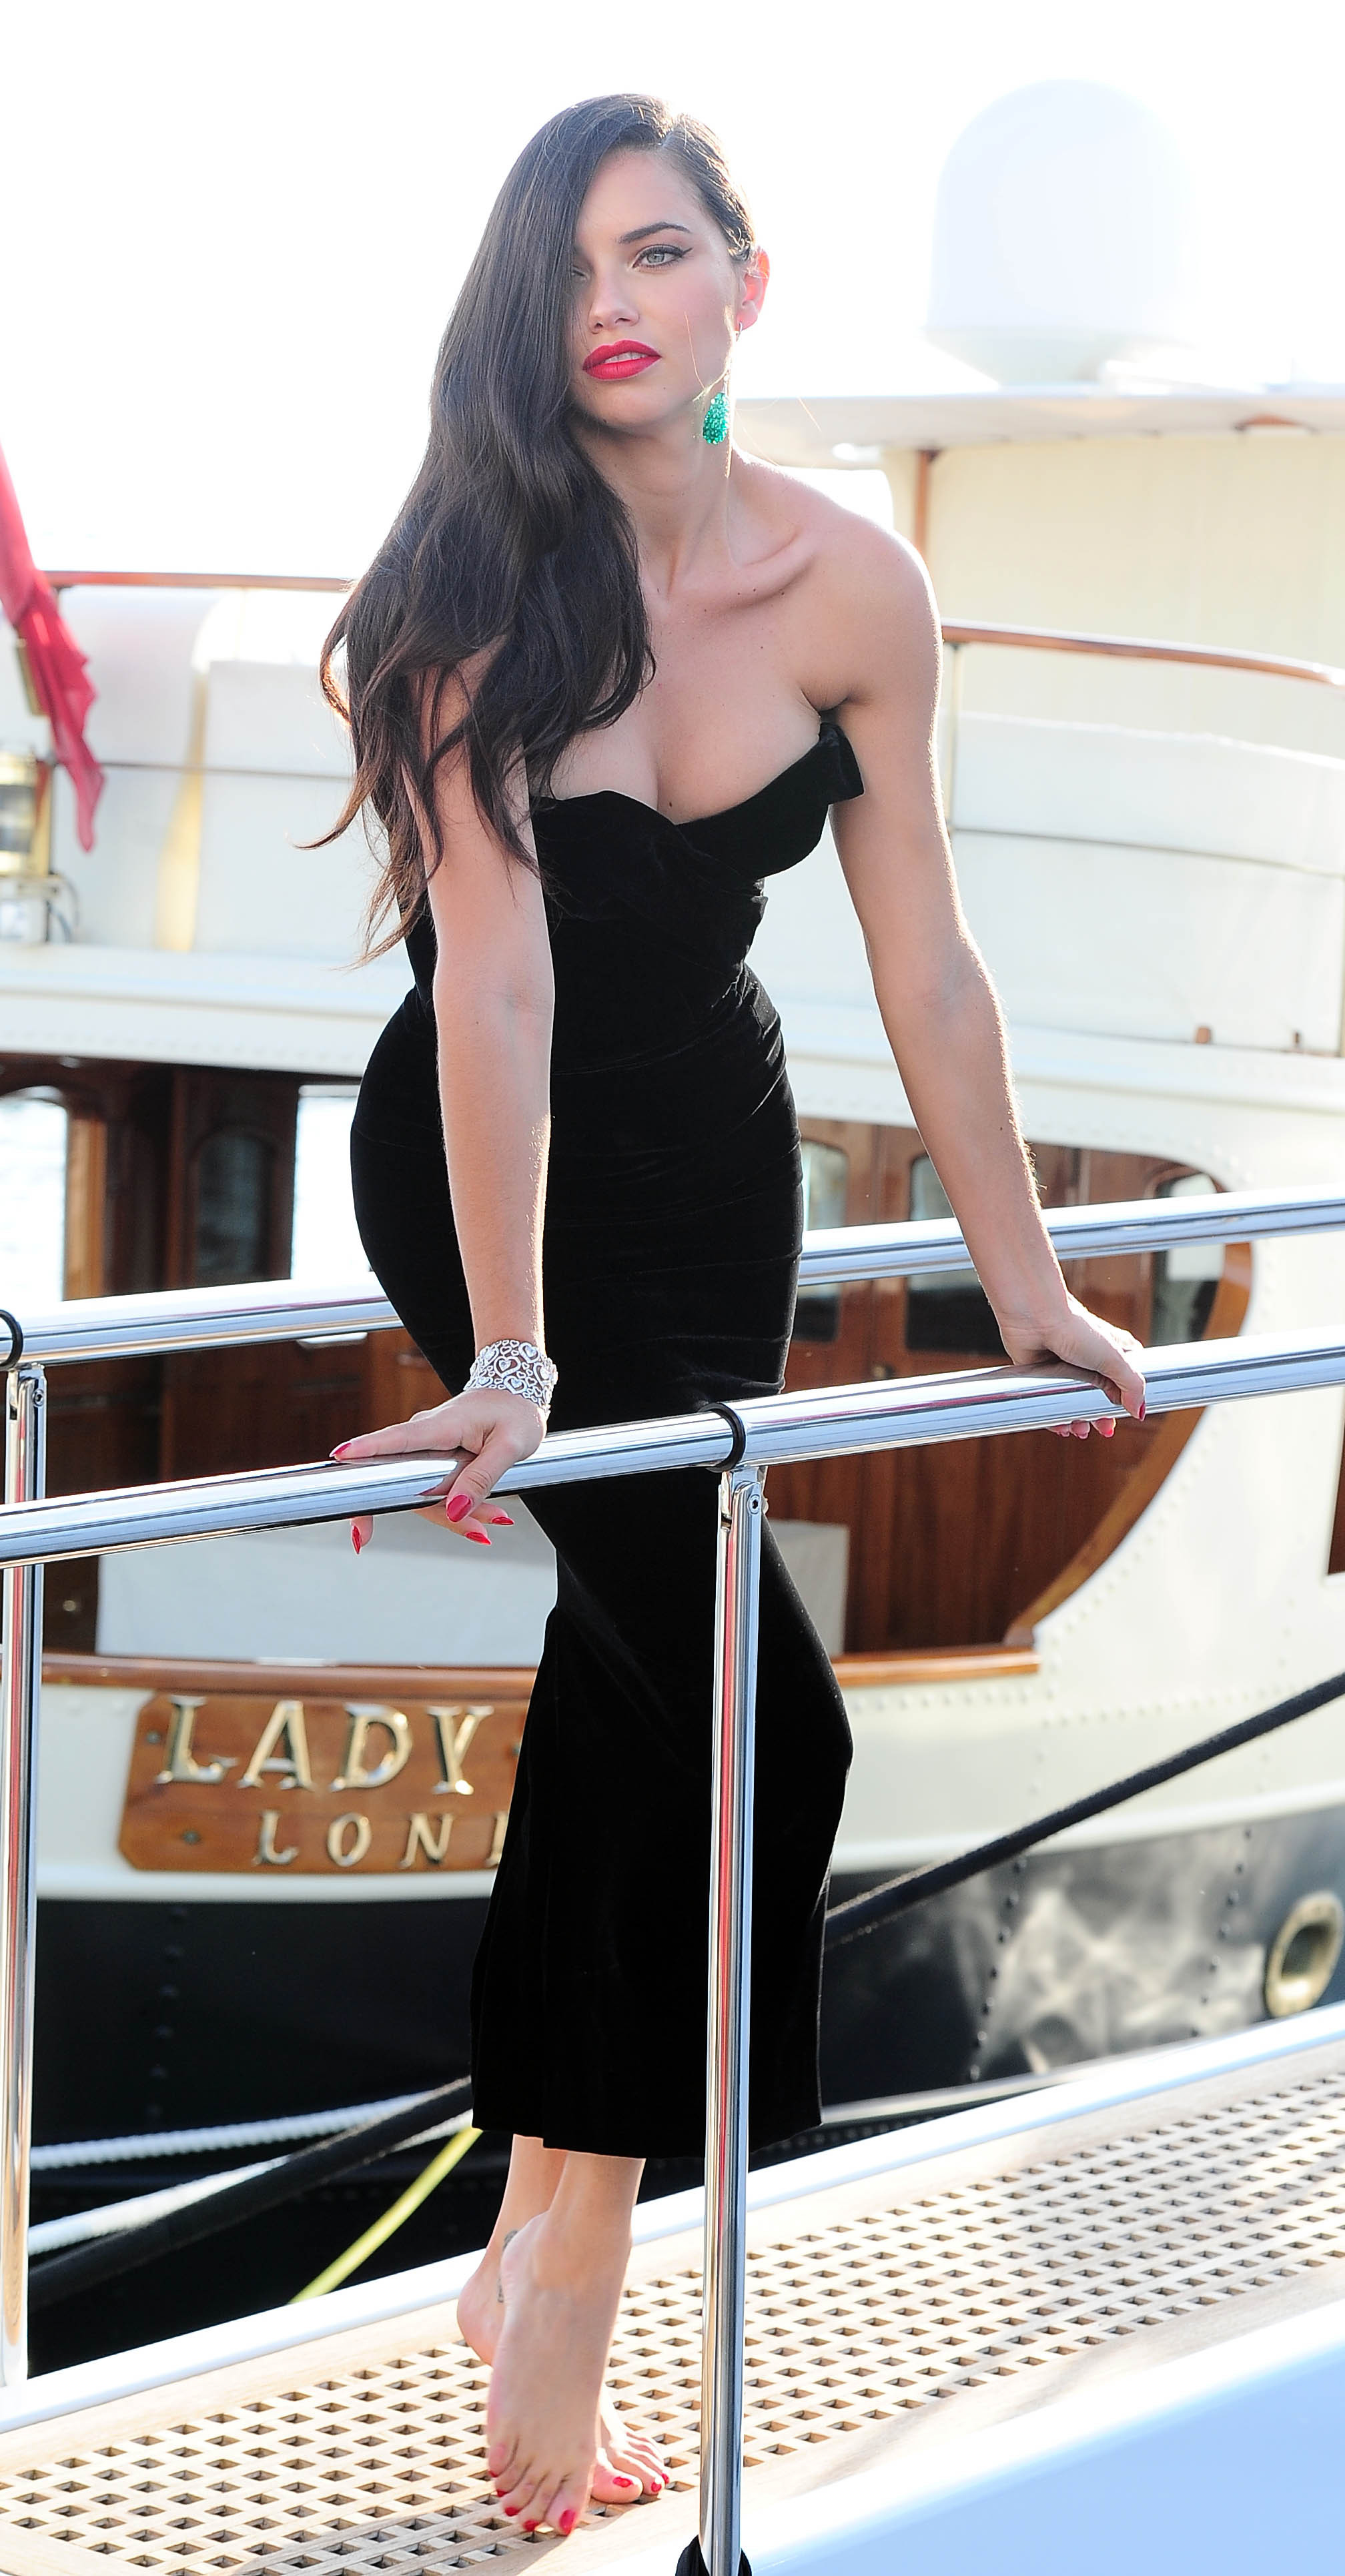 Black dress we heart it - Otherground Forums Adriana Lima Arriving At Cannes Pics